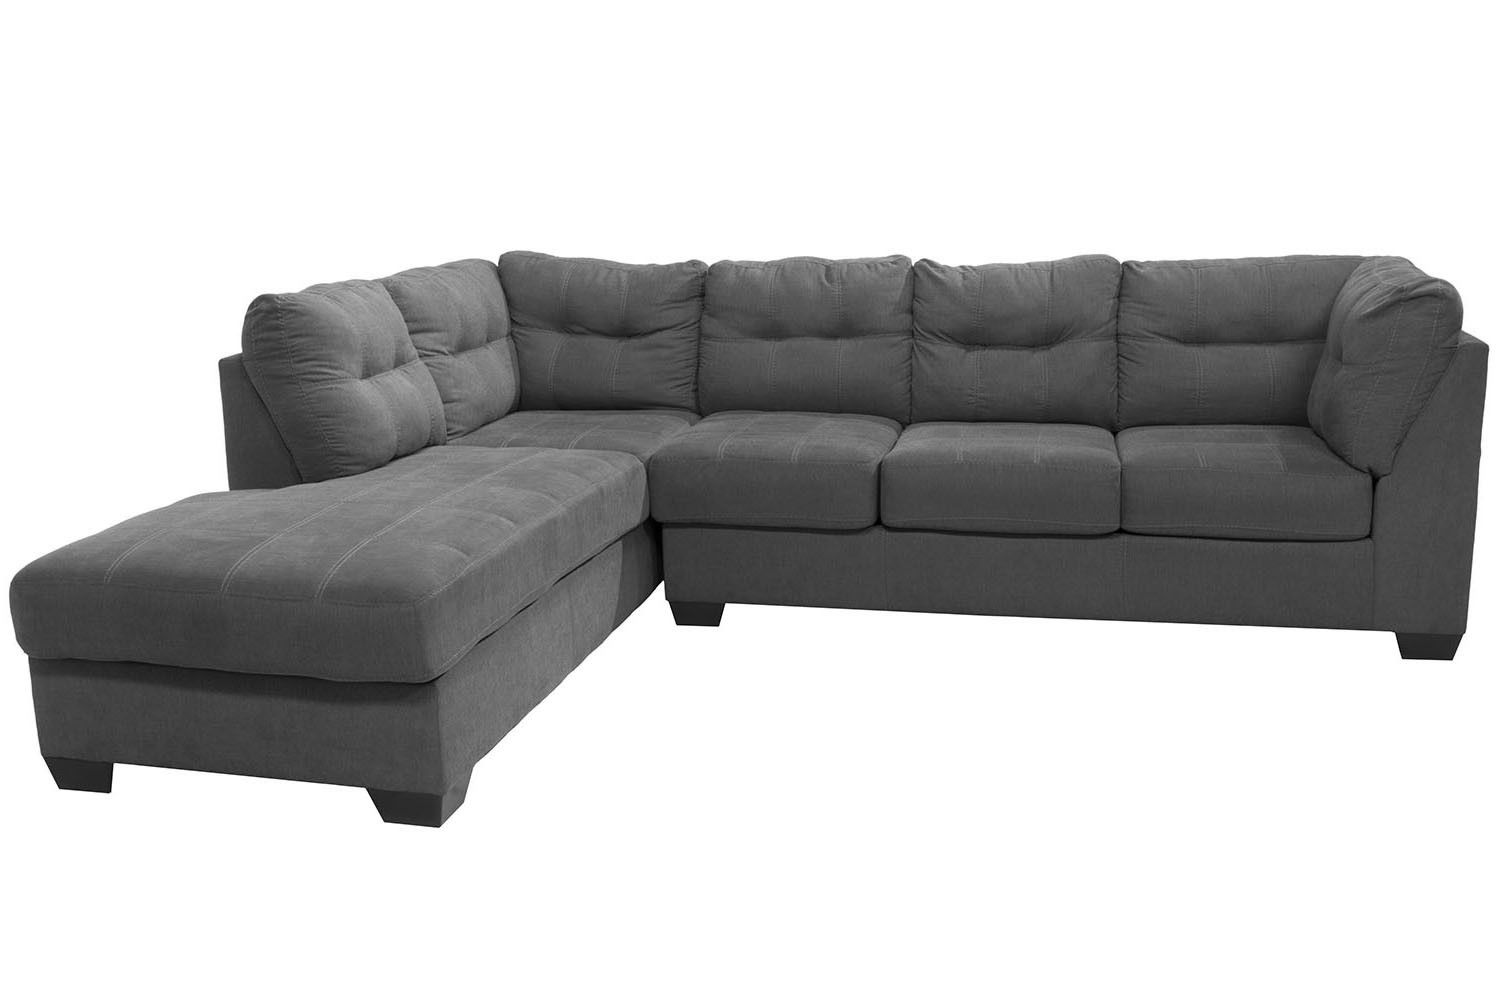 mor furniture    maier left facing chaise sectional mor furniture   living